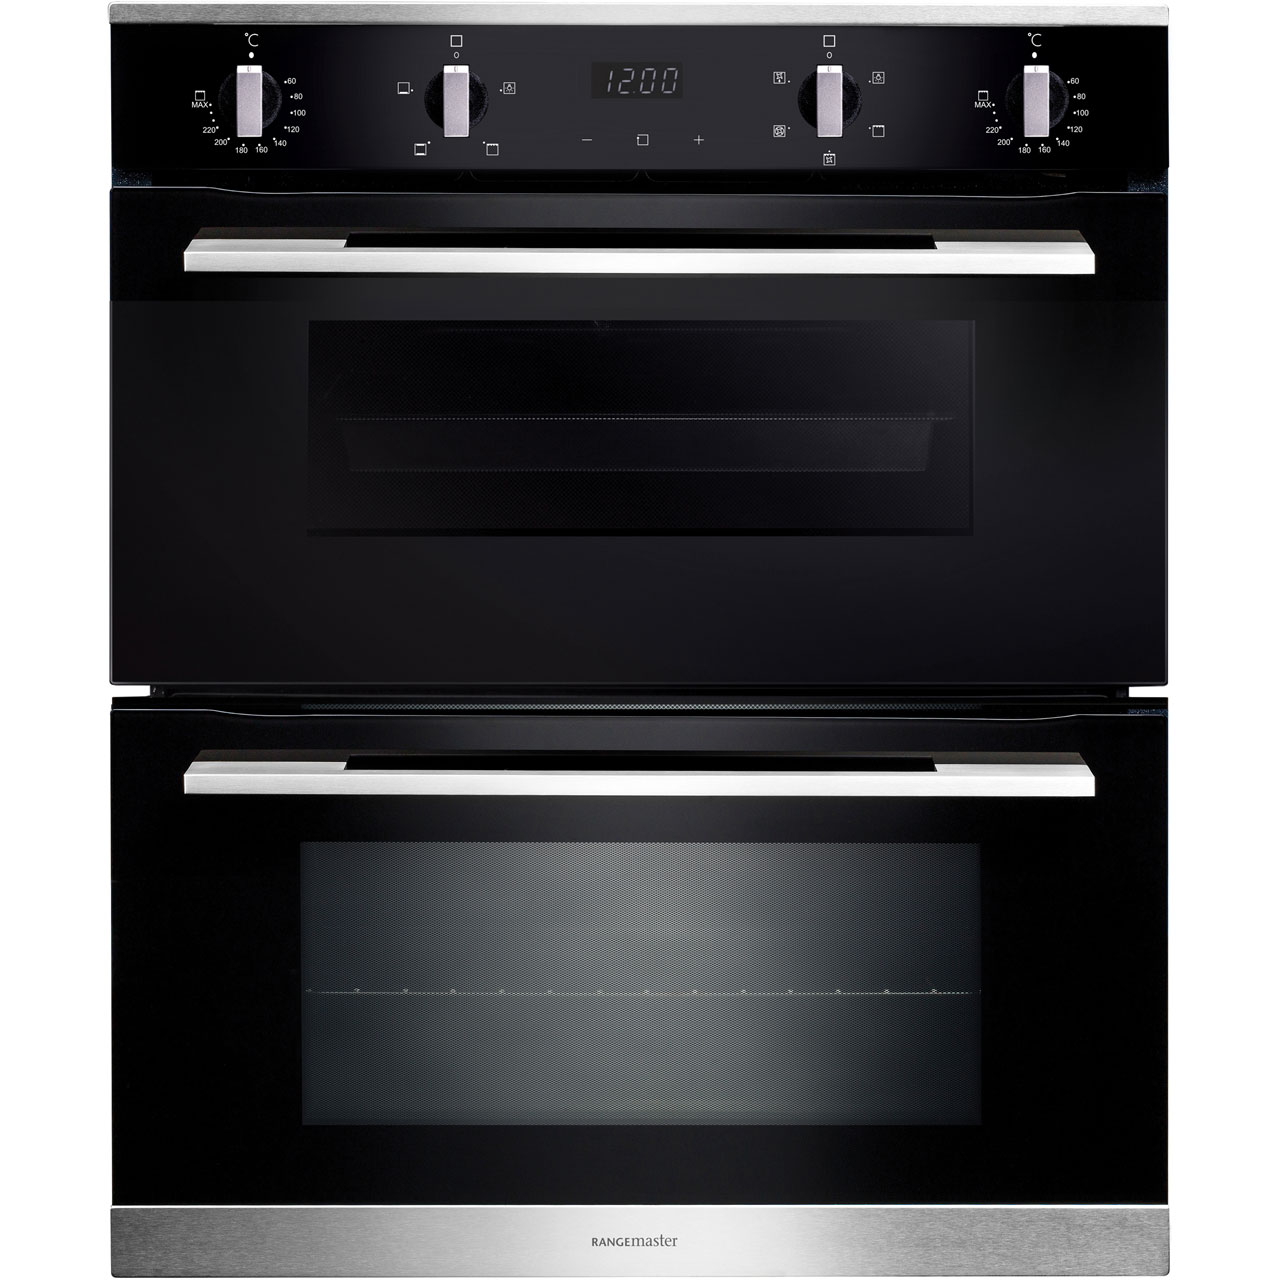 Rangemaster RMB7245BLSS Built Under Double Oven in Black